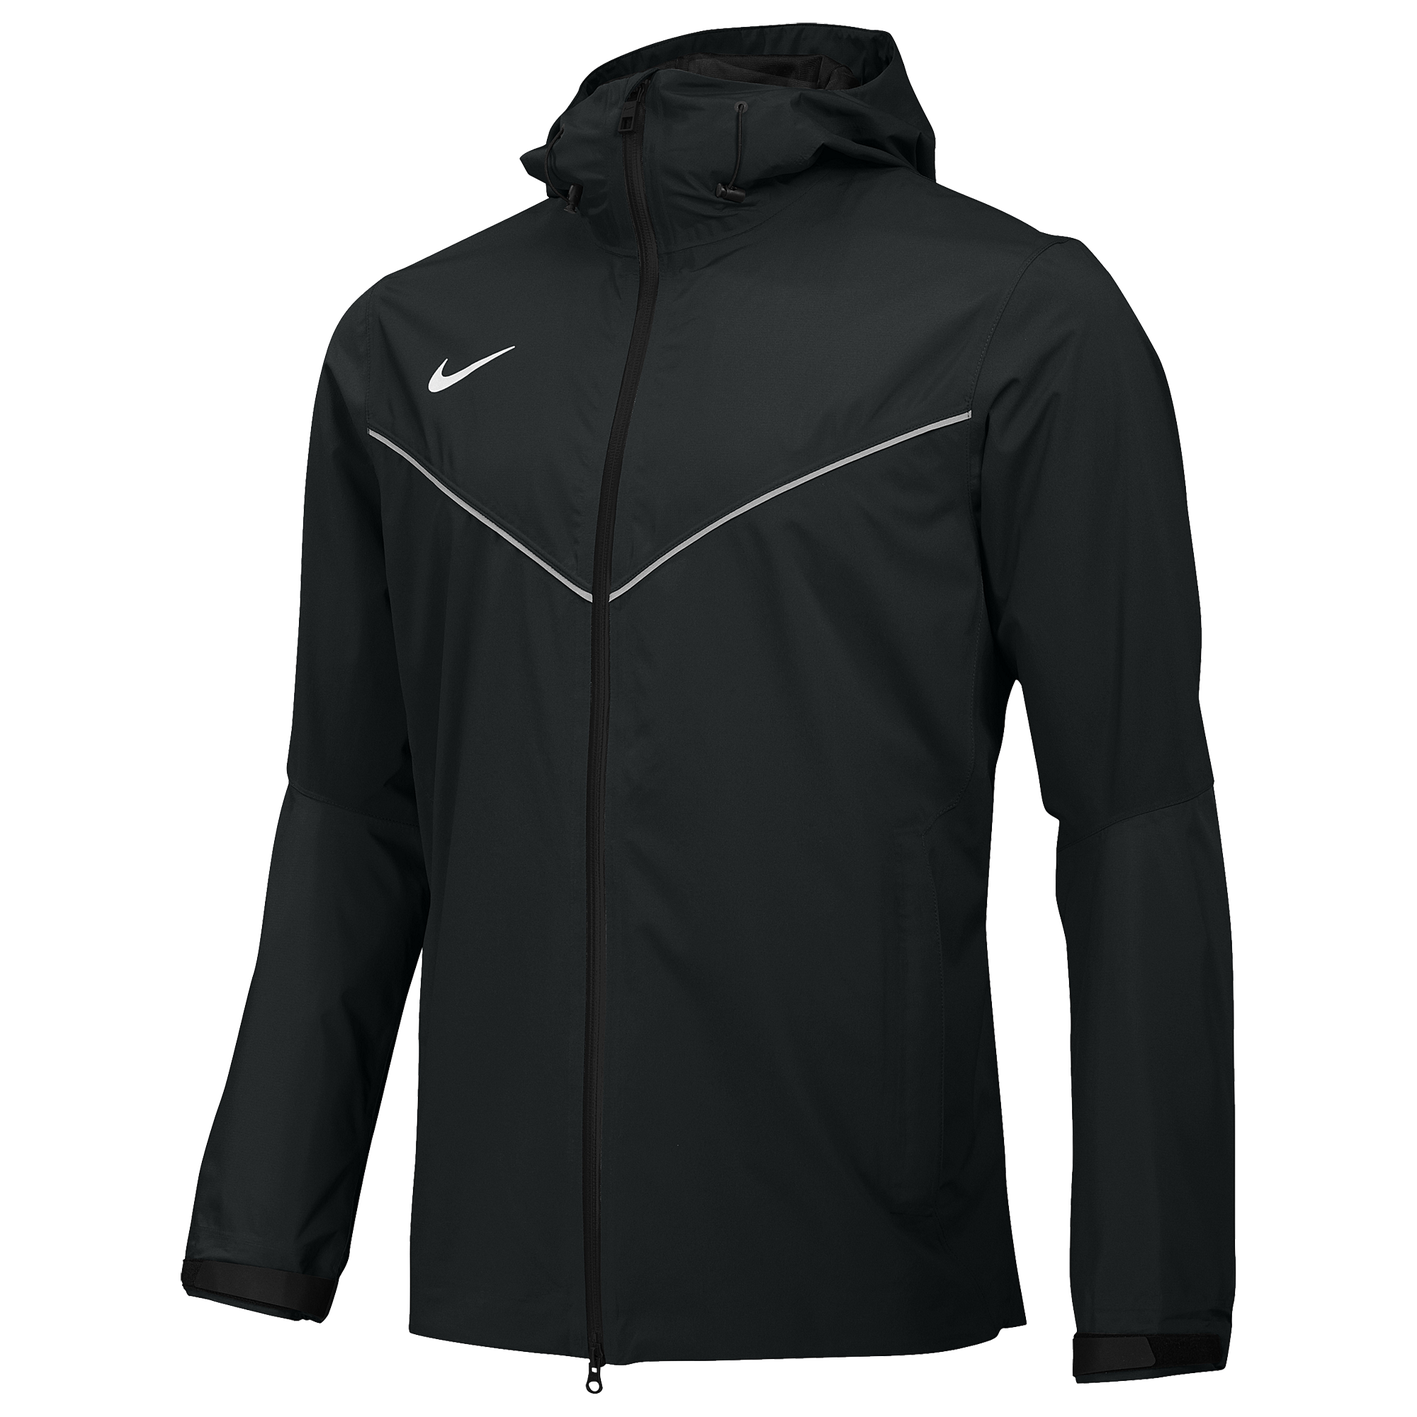 5ce5bd4a4b8df Nike Team Waterproof Jacket - Men's - For All Sports - Clothing ...